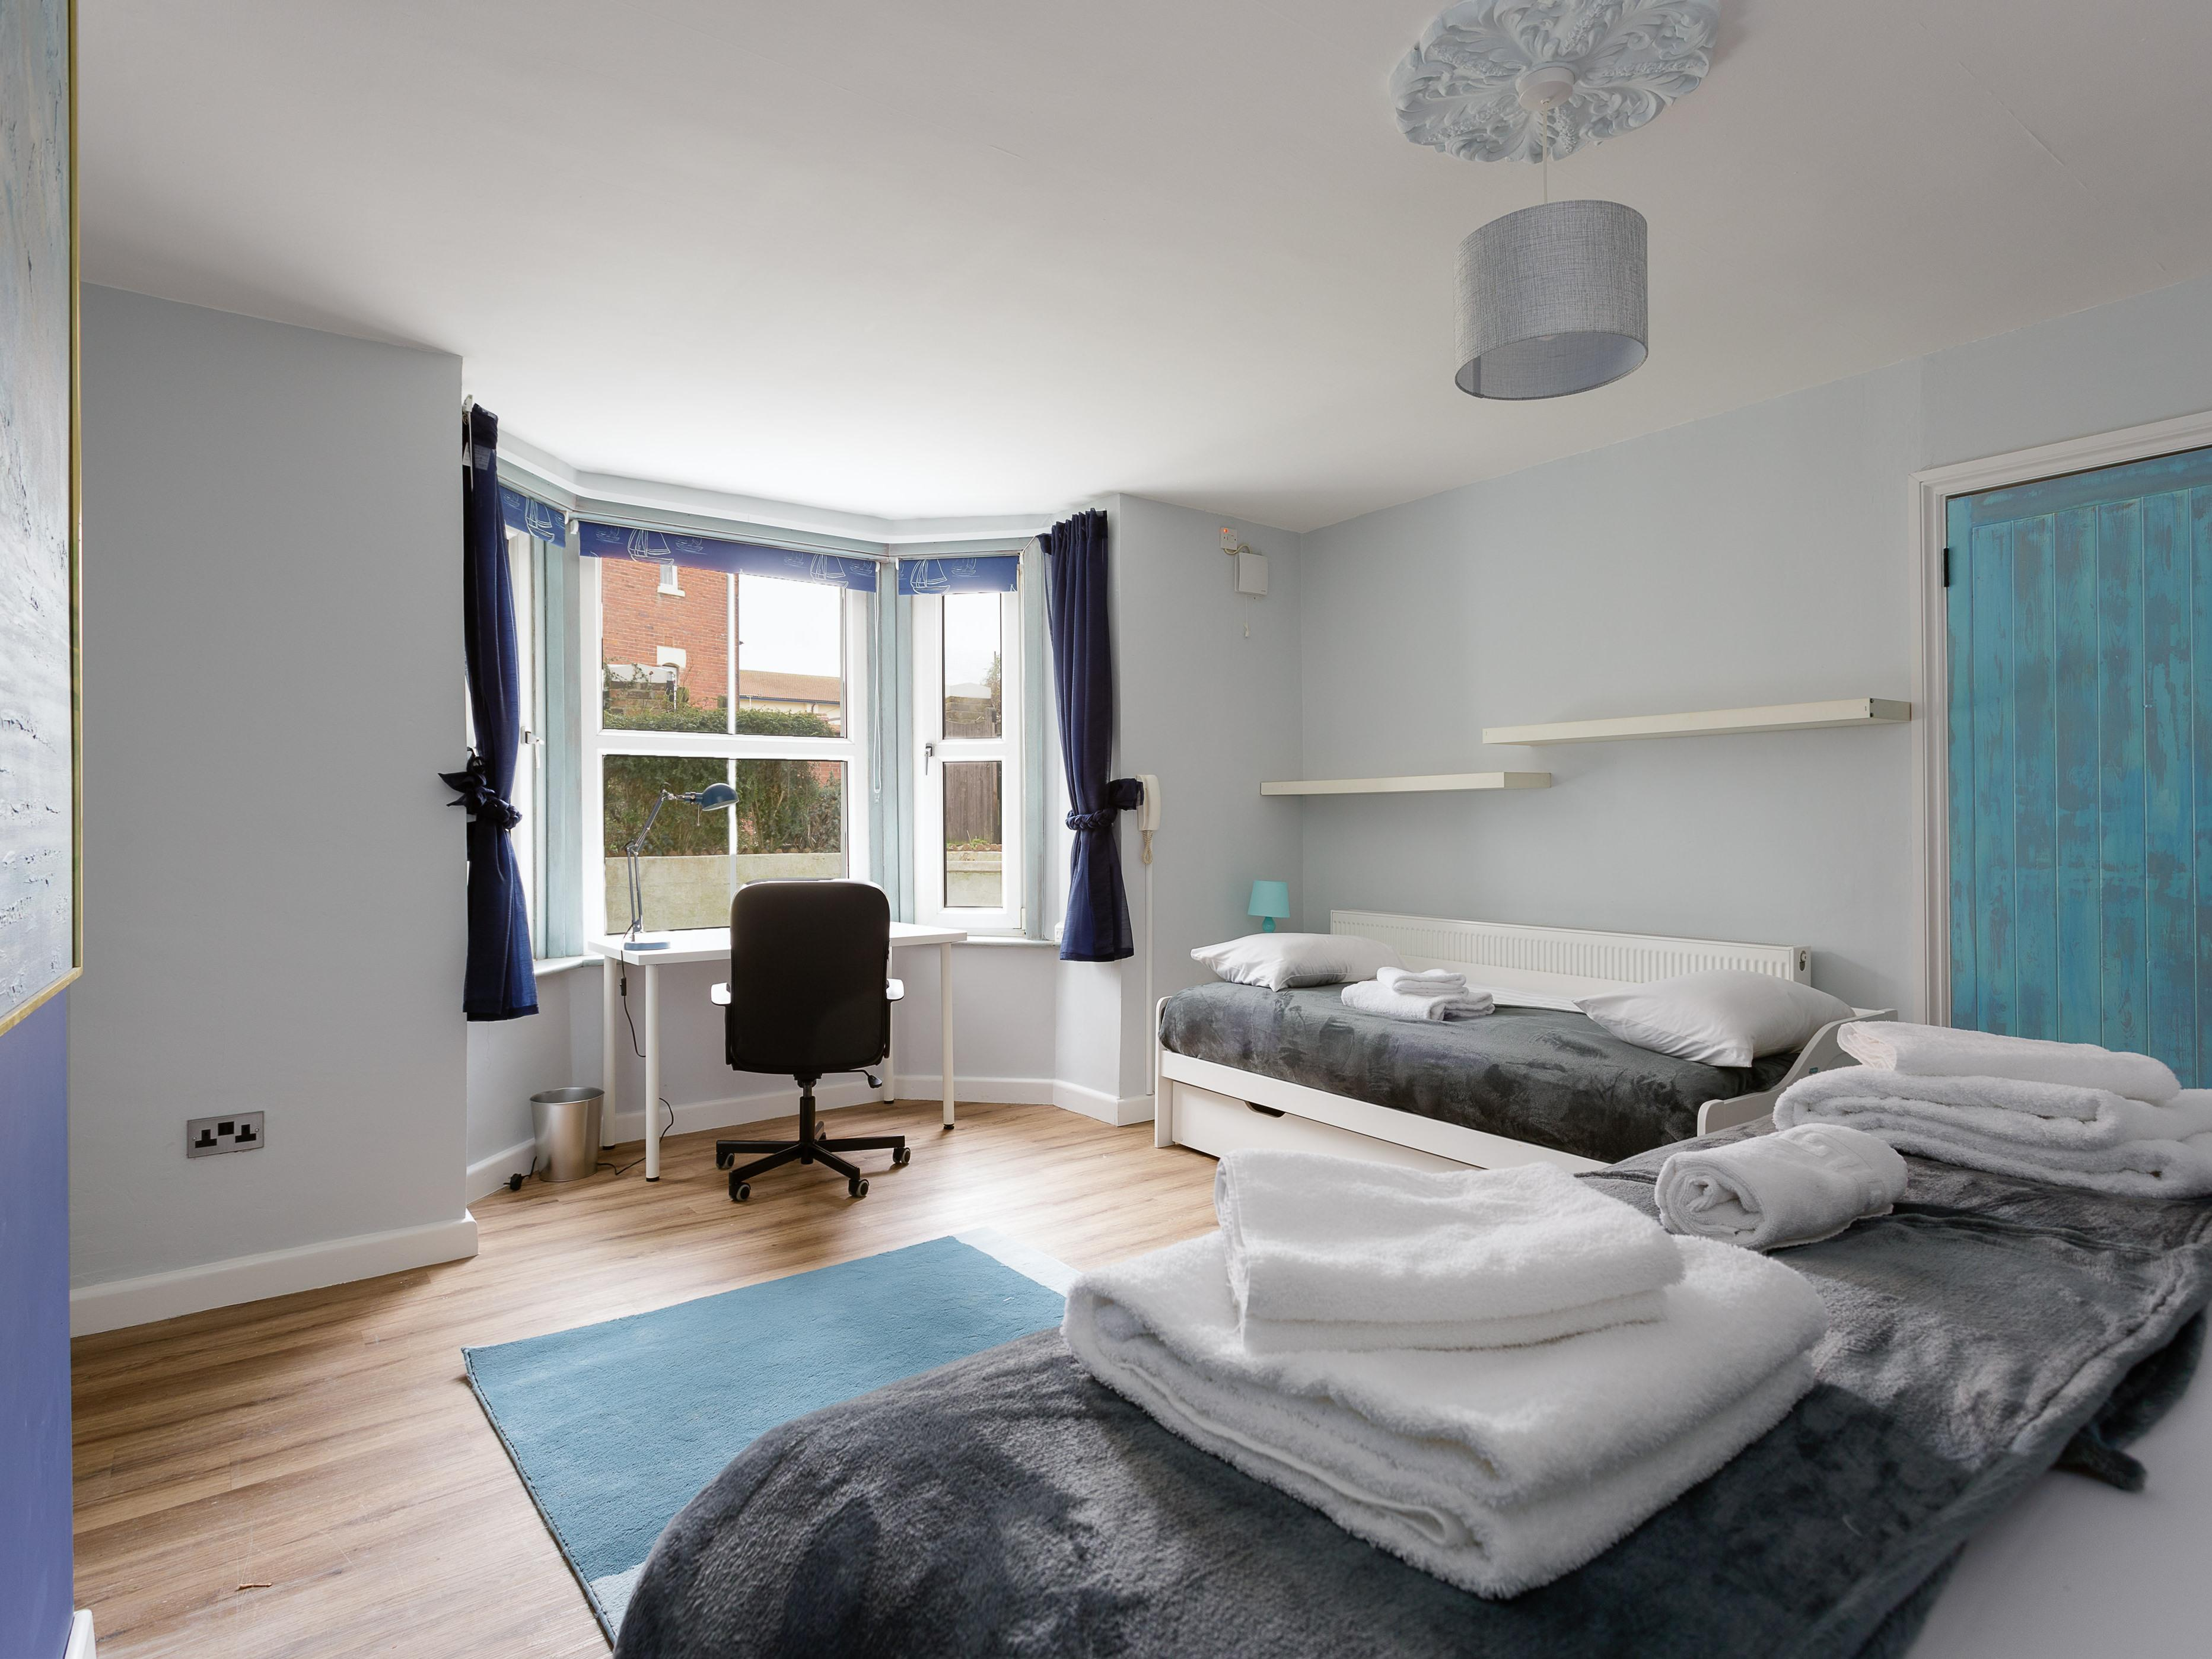 Albany Garden - Luxury Apartment with Jacuzzi